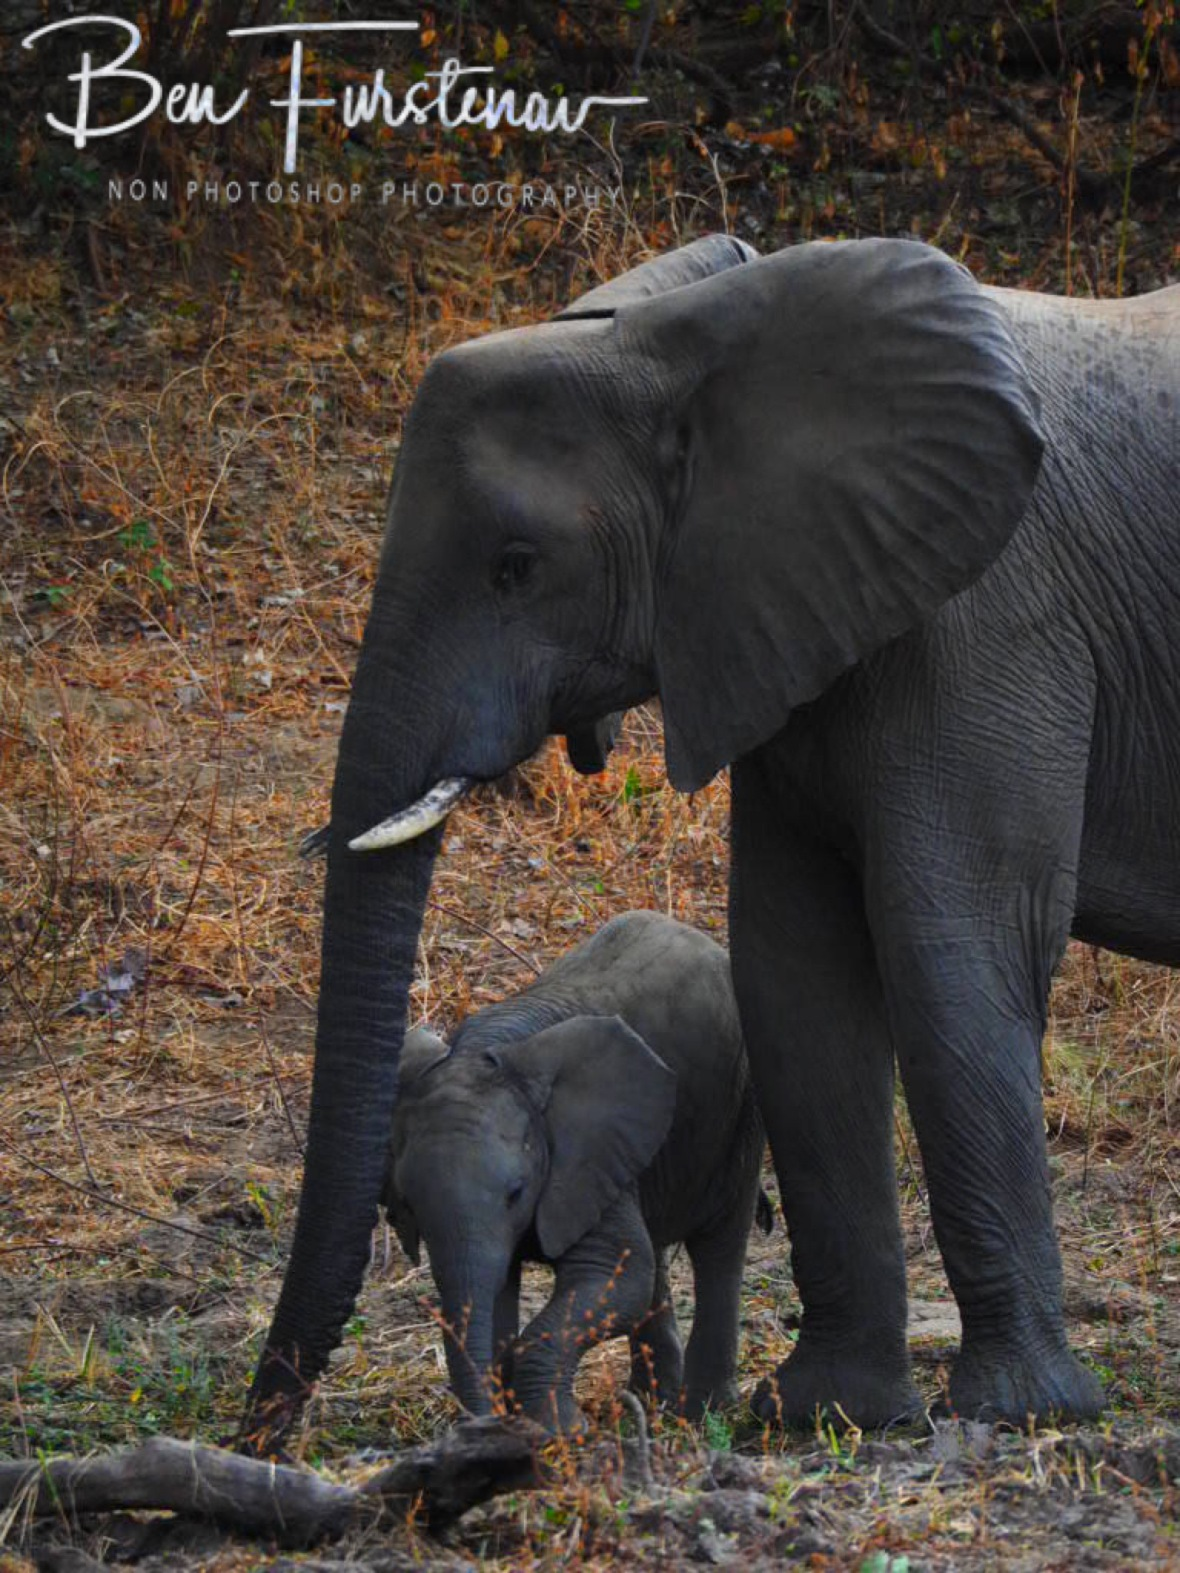 Elephant calf and Aunty, South Luangwa National Park, Zambia